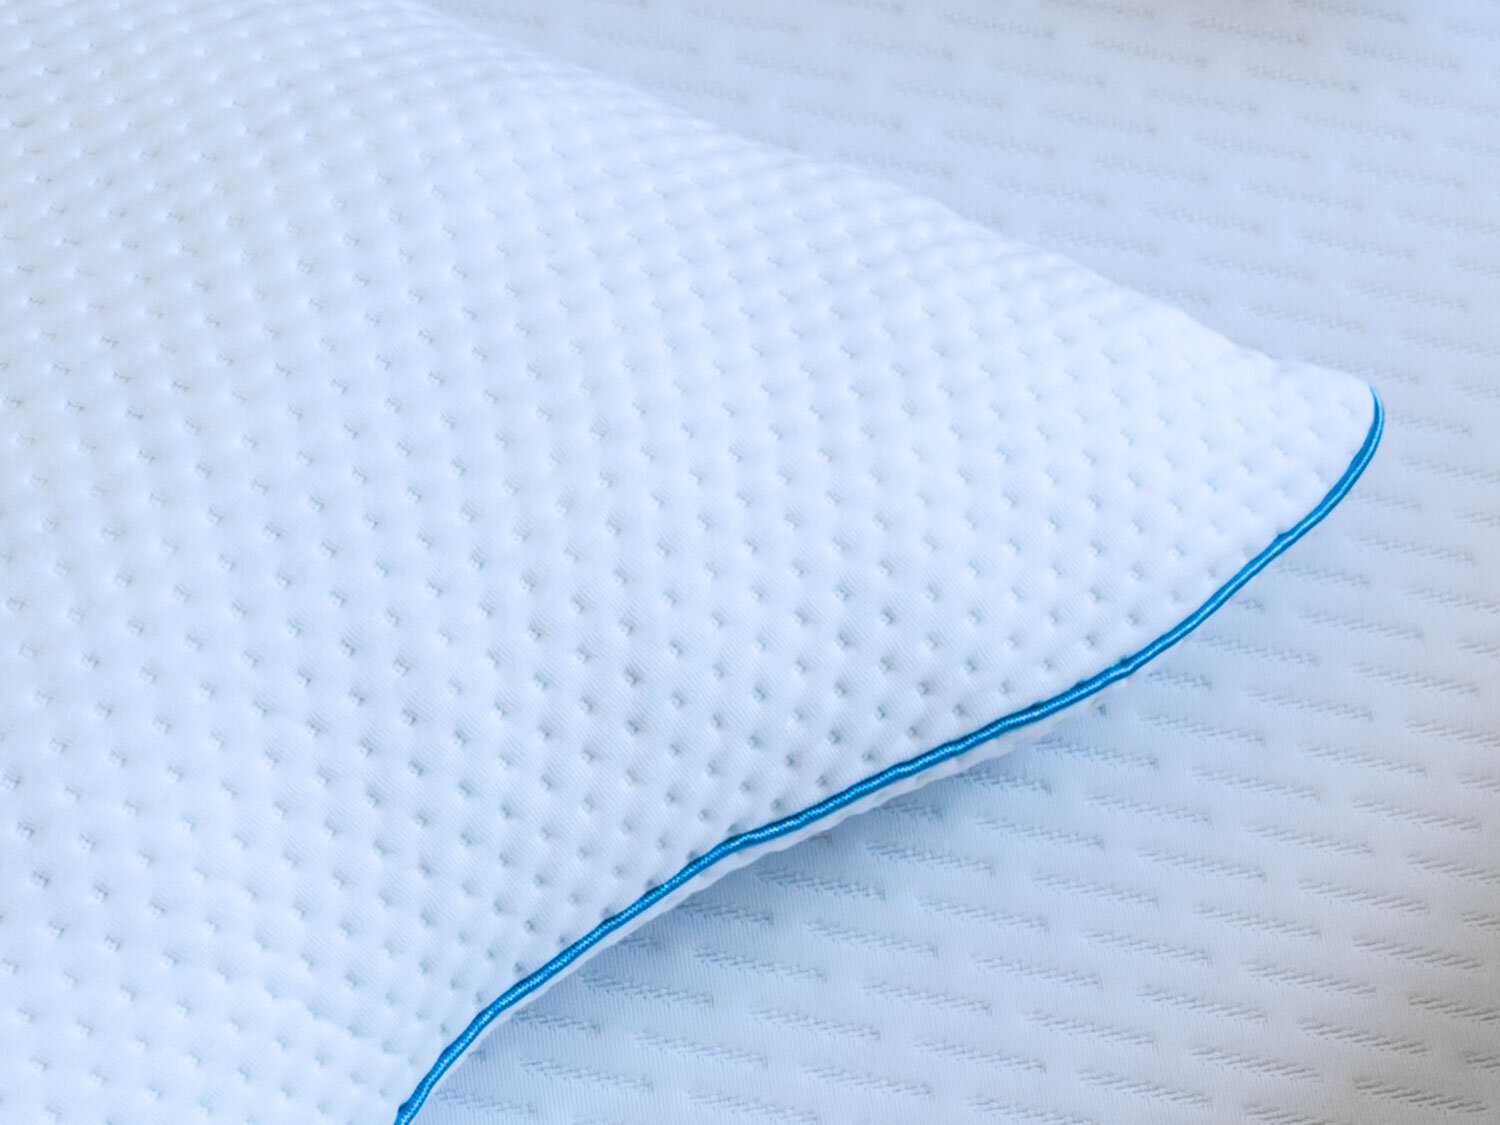 The VitalRem Pillow  ship free, and comes with a 365 day trial period, plus a lifetime warranty